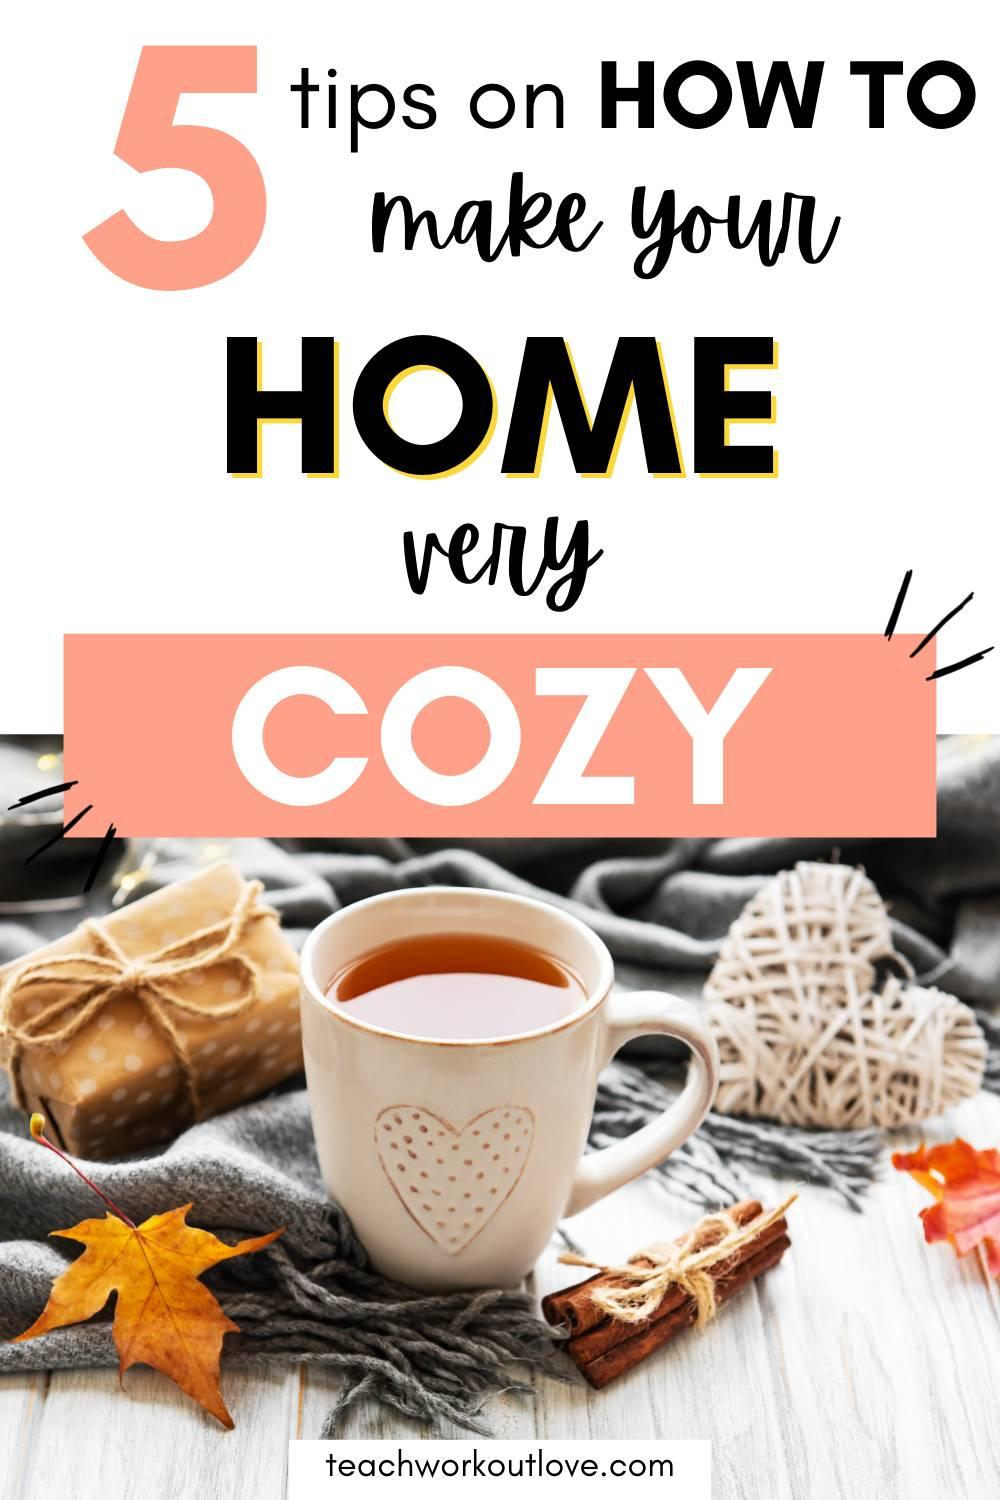 Keeping your body warm in those chilly weather conditions is easy; it is inside your home that can sometimes be a challenge. Here's how.